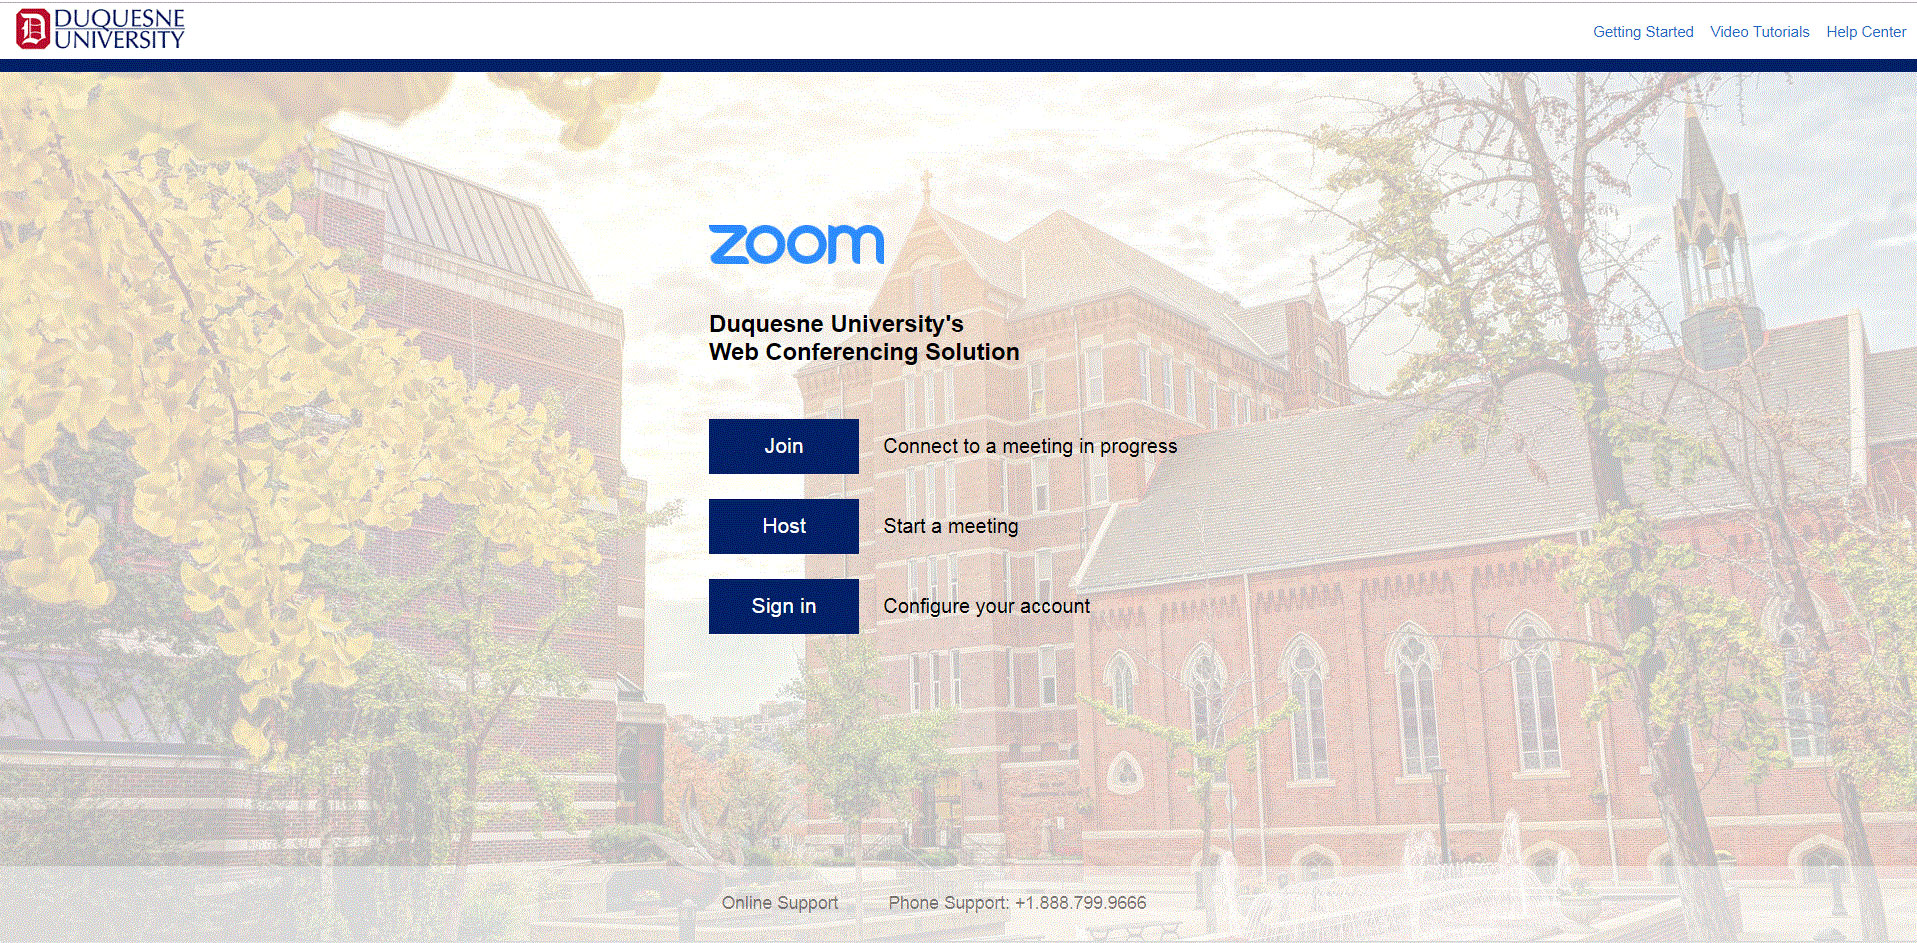 Duquesne University Zoom Login Page